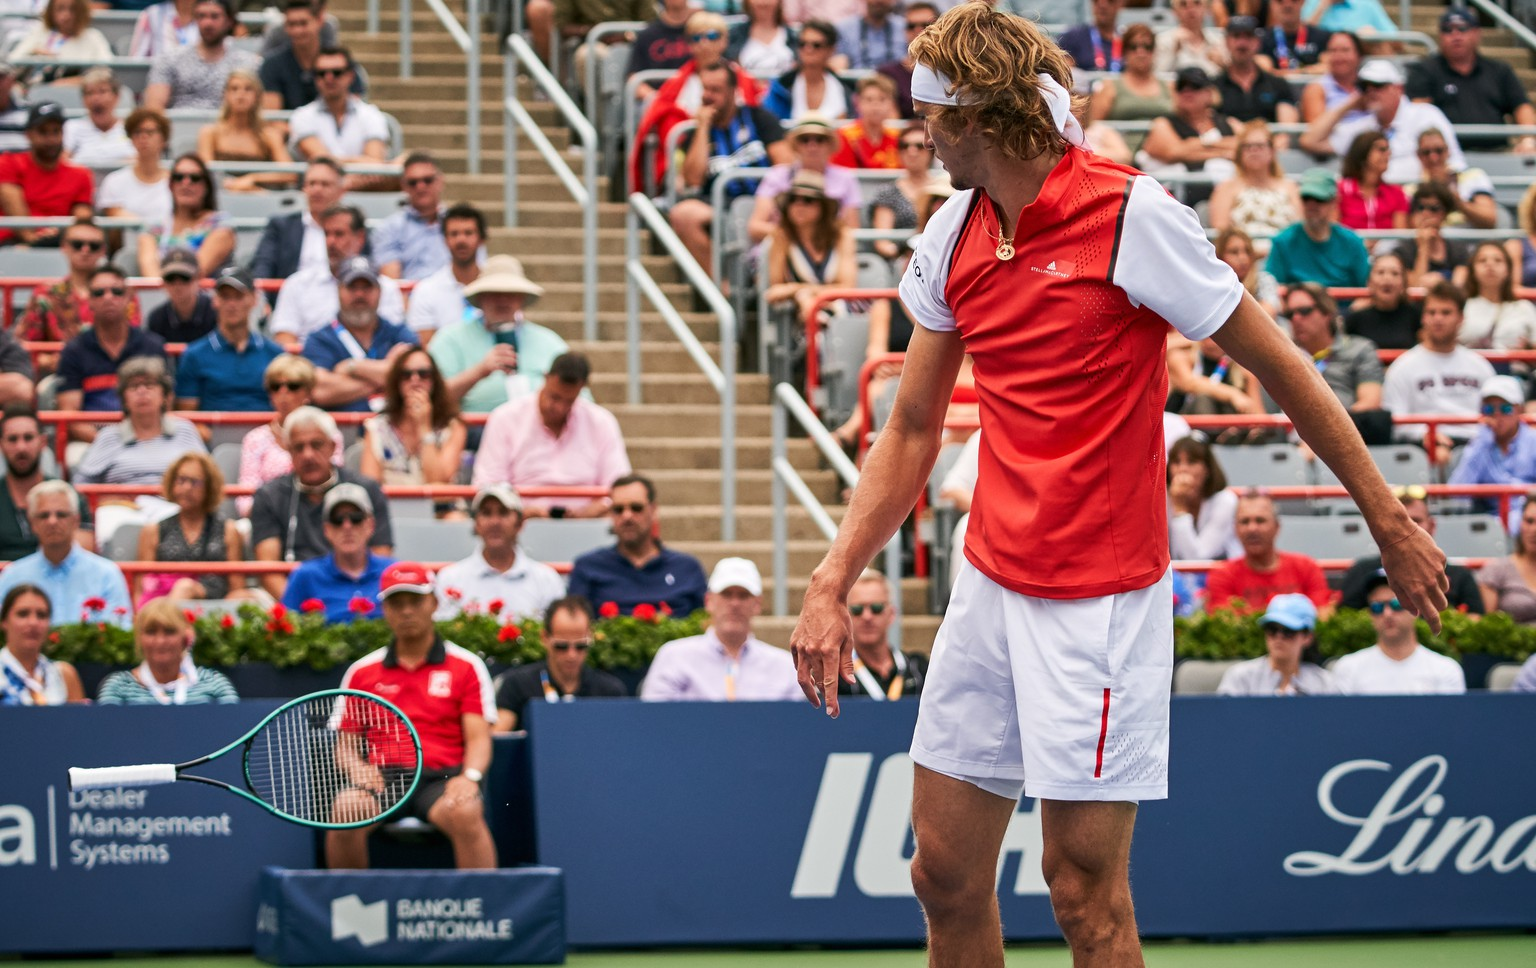 epaselect epa07765014 Alexander Zverev of Germany throws his tennis racket after he lost a set against Karen Khachanov of Russia during the Men's Singles quarter-final at the Rogers Cup tennis tournament in Montreal, Canada, 09 August 2019.  EPA/VALERIE BLUM